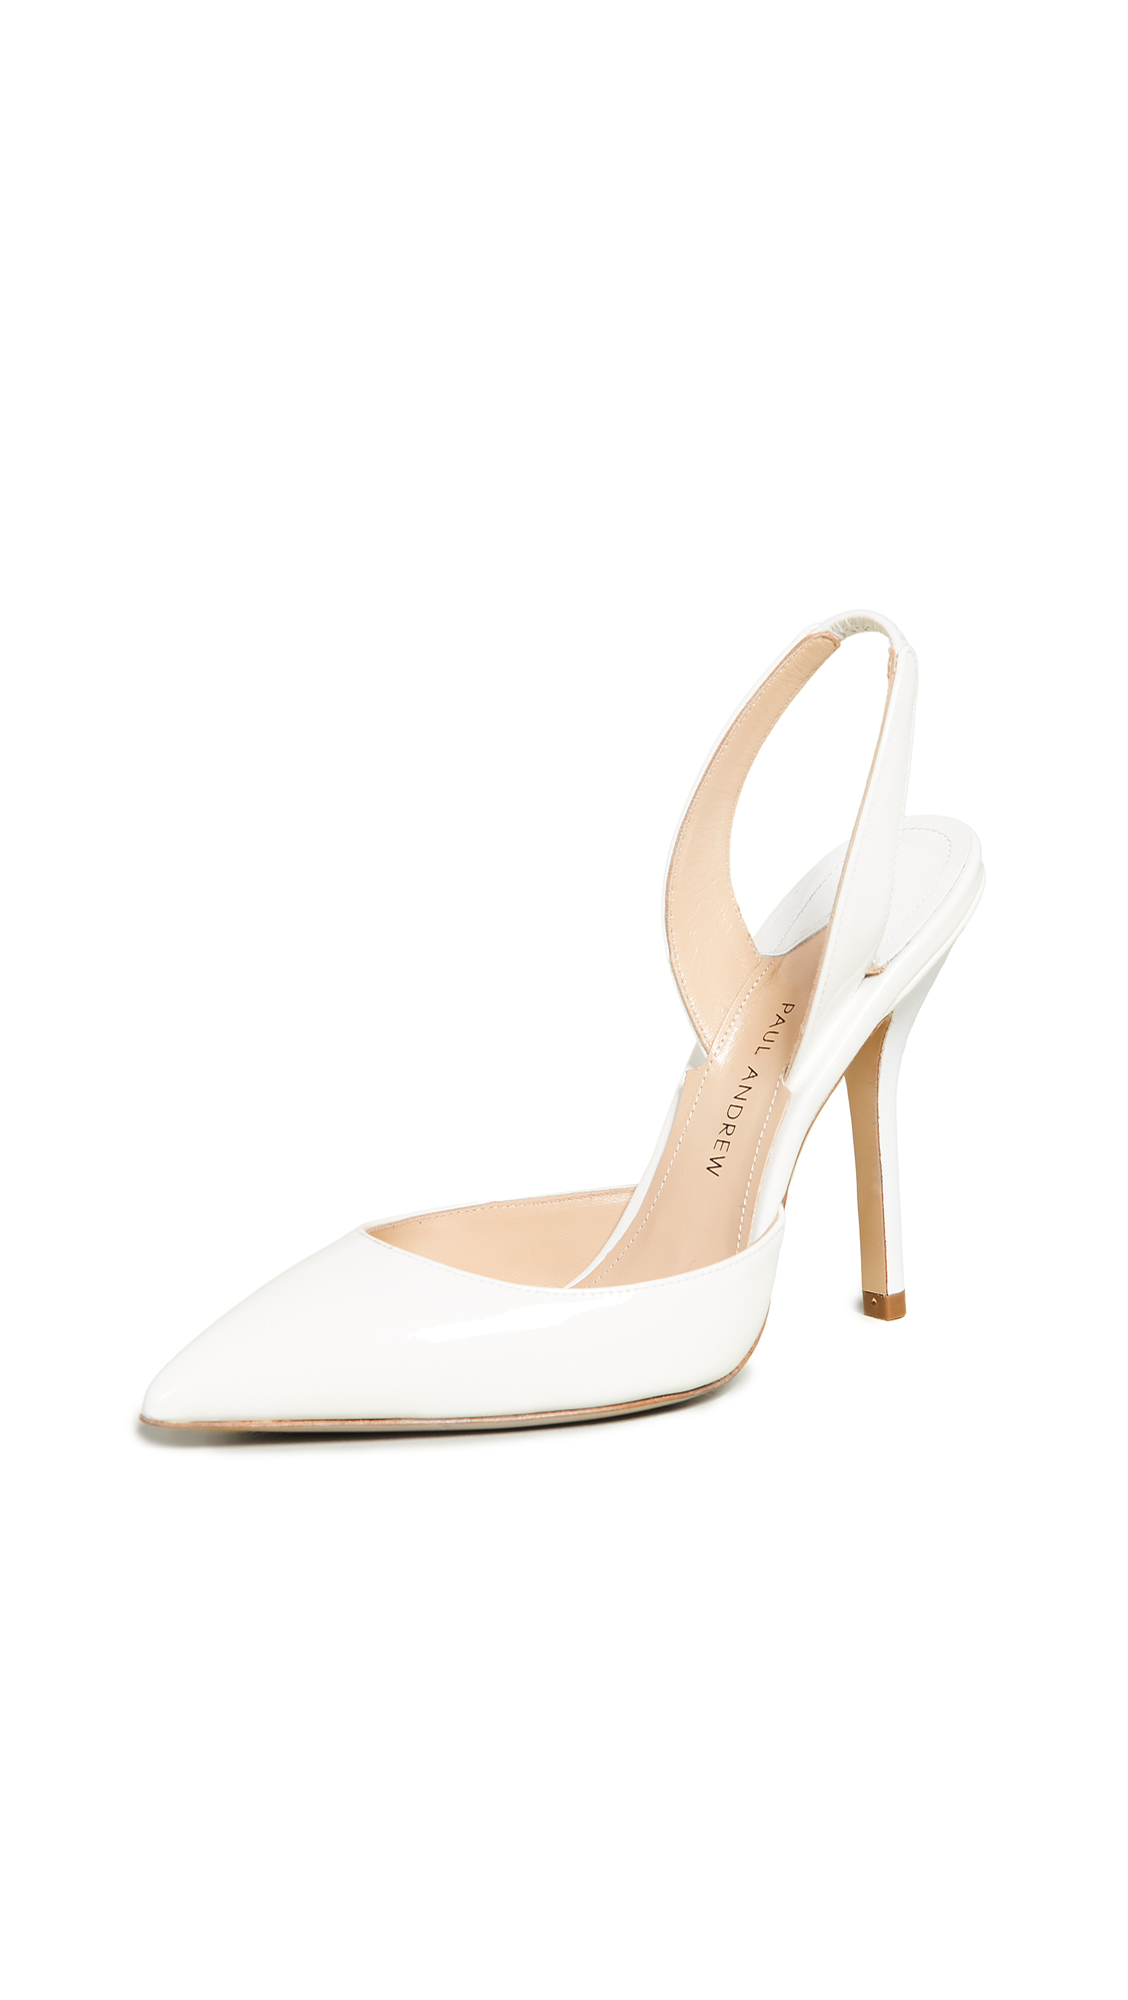 Paul Andrew Passion Slingback Pumps - White